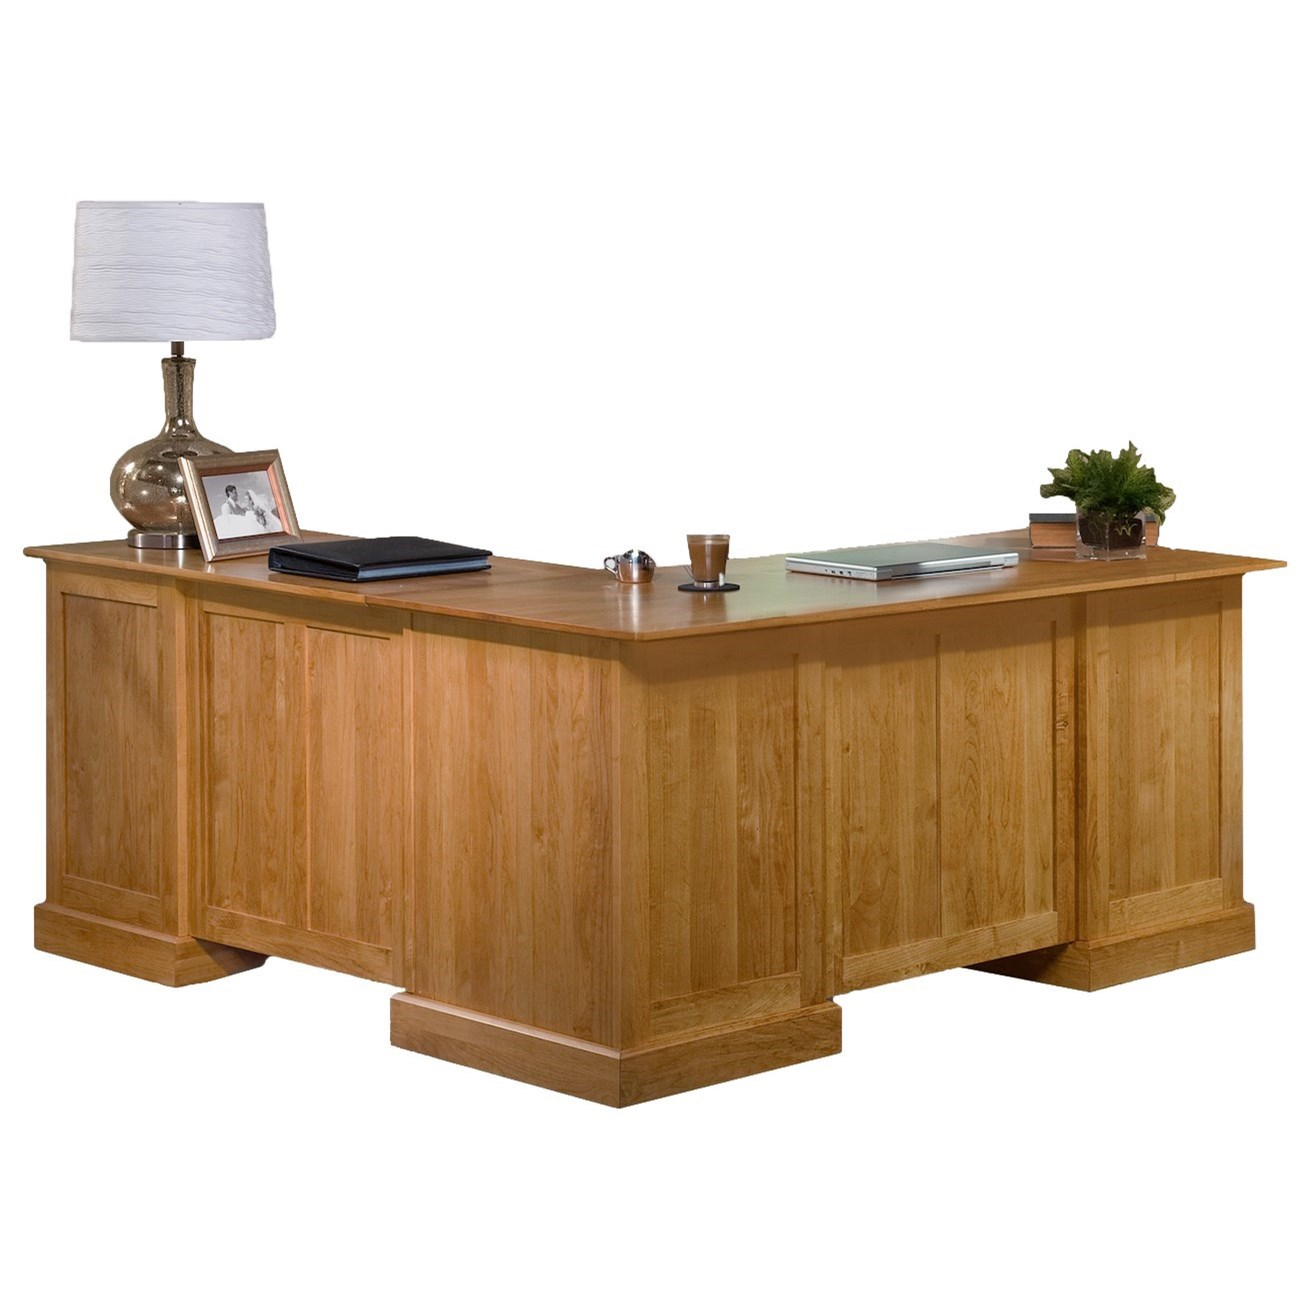 Executive Home Office L Shape Desk and Return by Archbold Furniture at Furniture and ApplianceMart